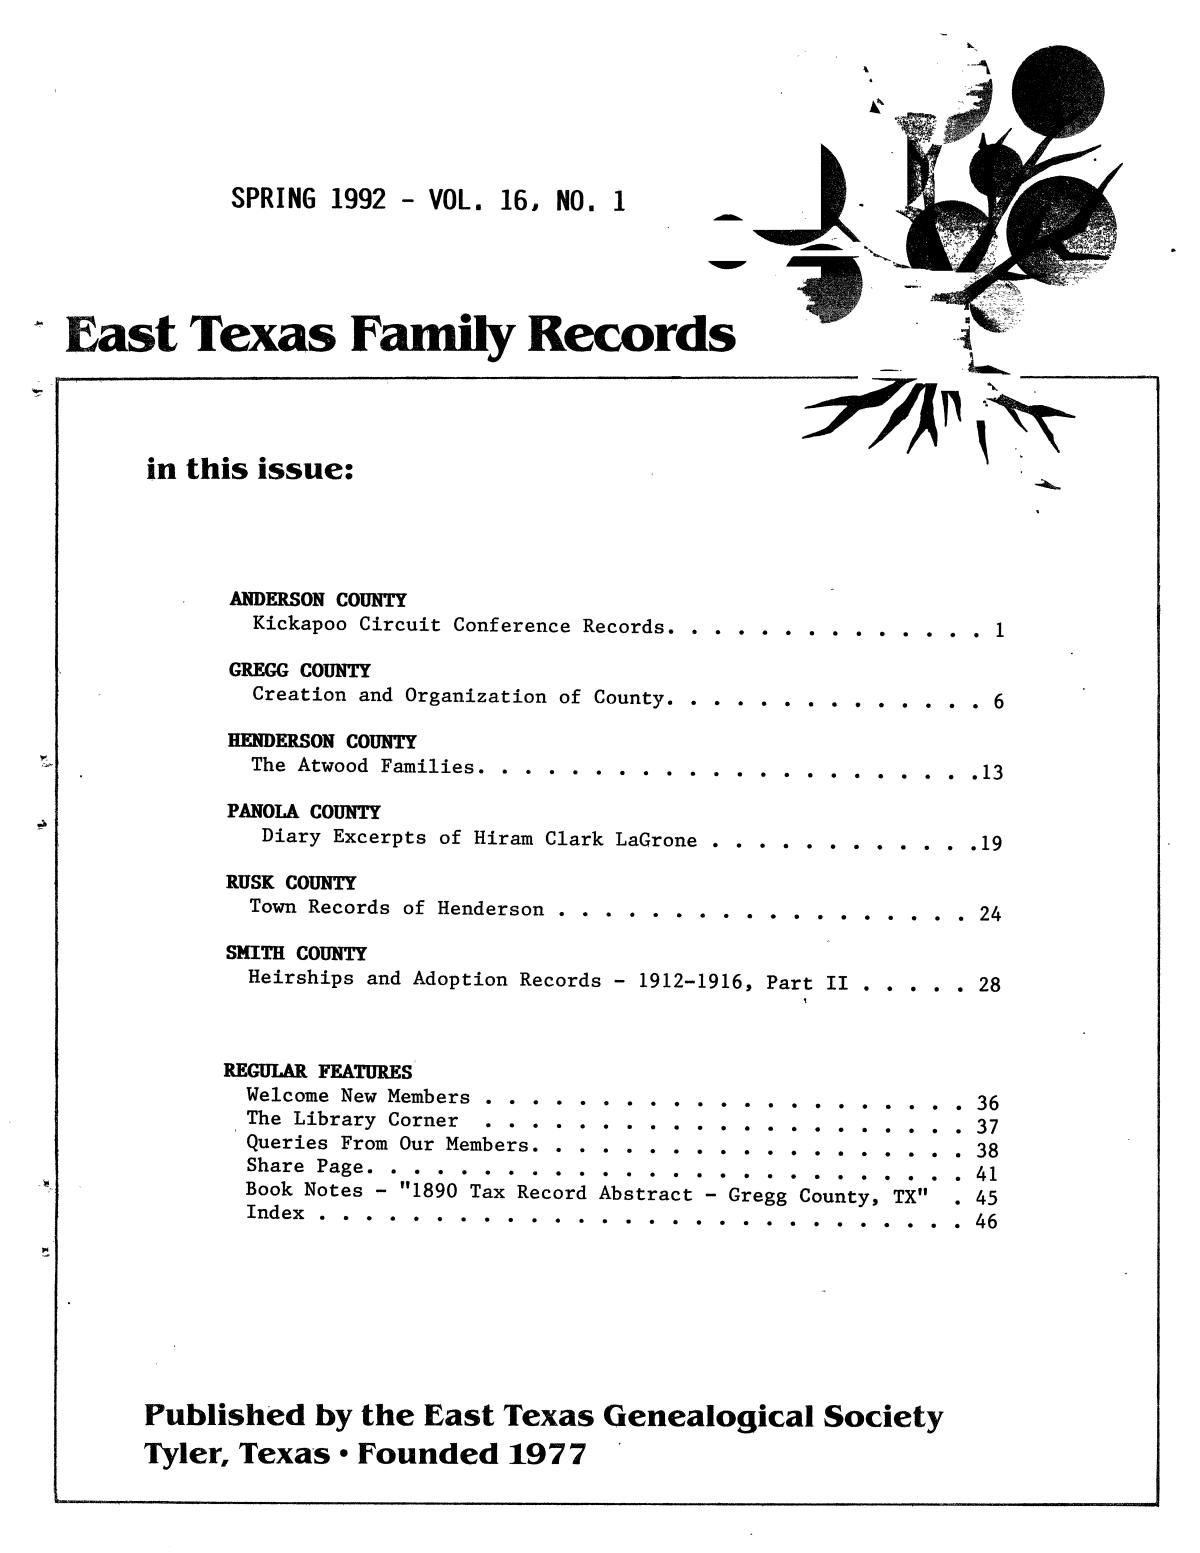 East Texas Family Records, Volume 16, Number 1, Spring 1992